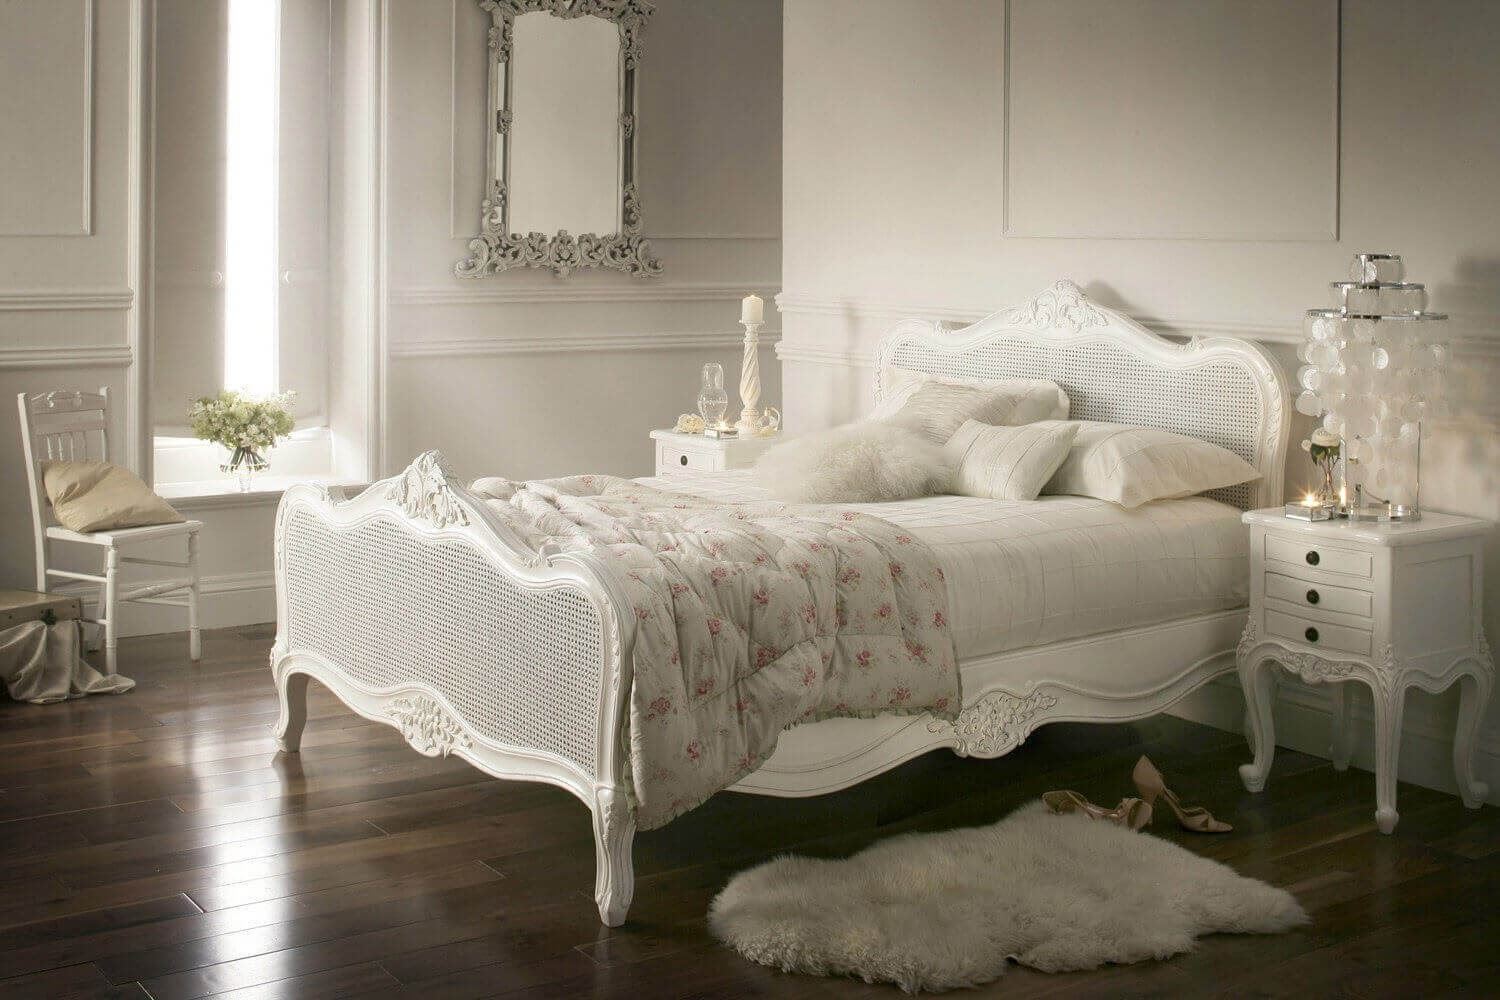 Luxury Meets Old-school - 33 Best Vintage Bedroom Decor Ideas And Designs For 2017